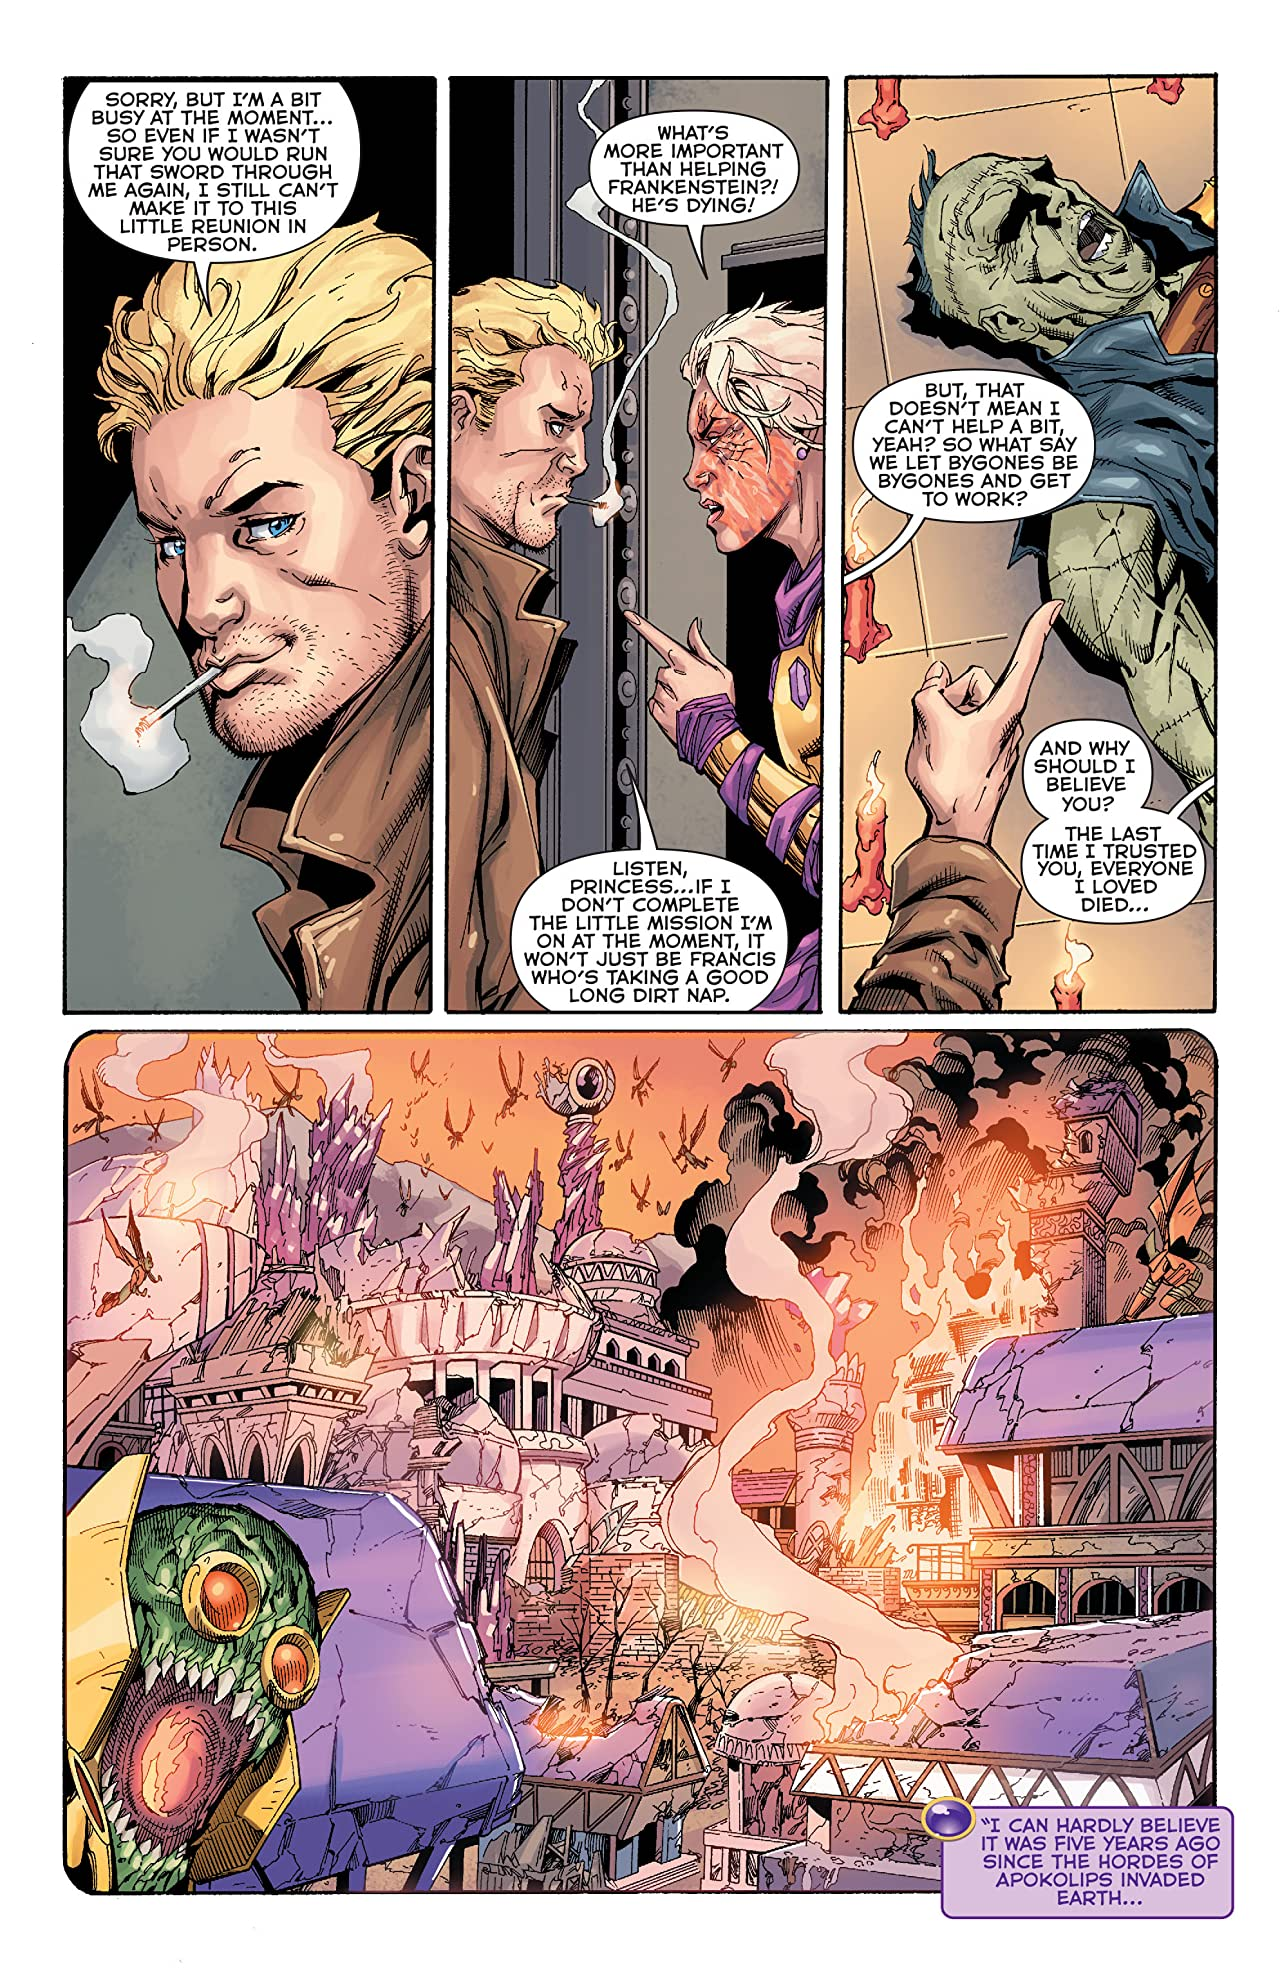 The New 52: Futures End #37